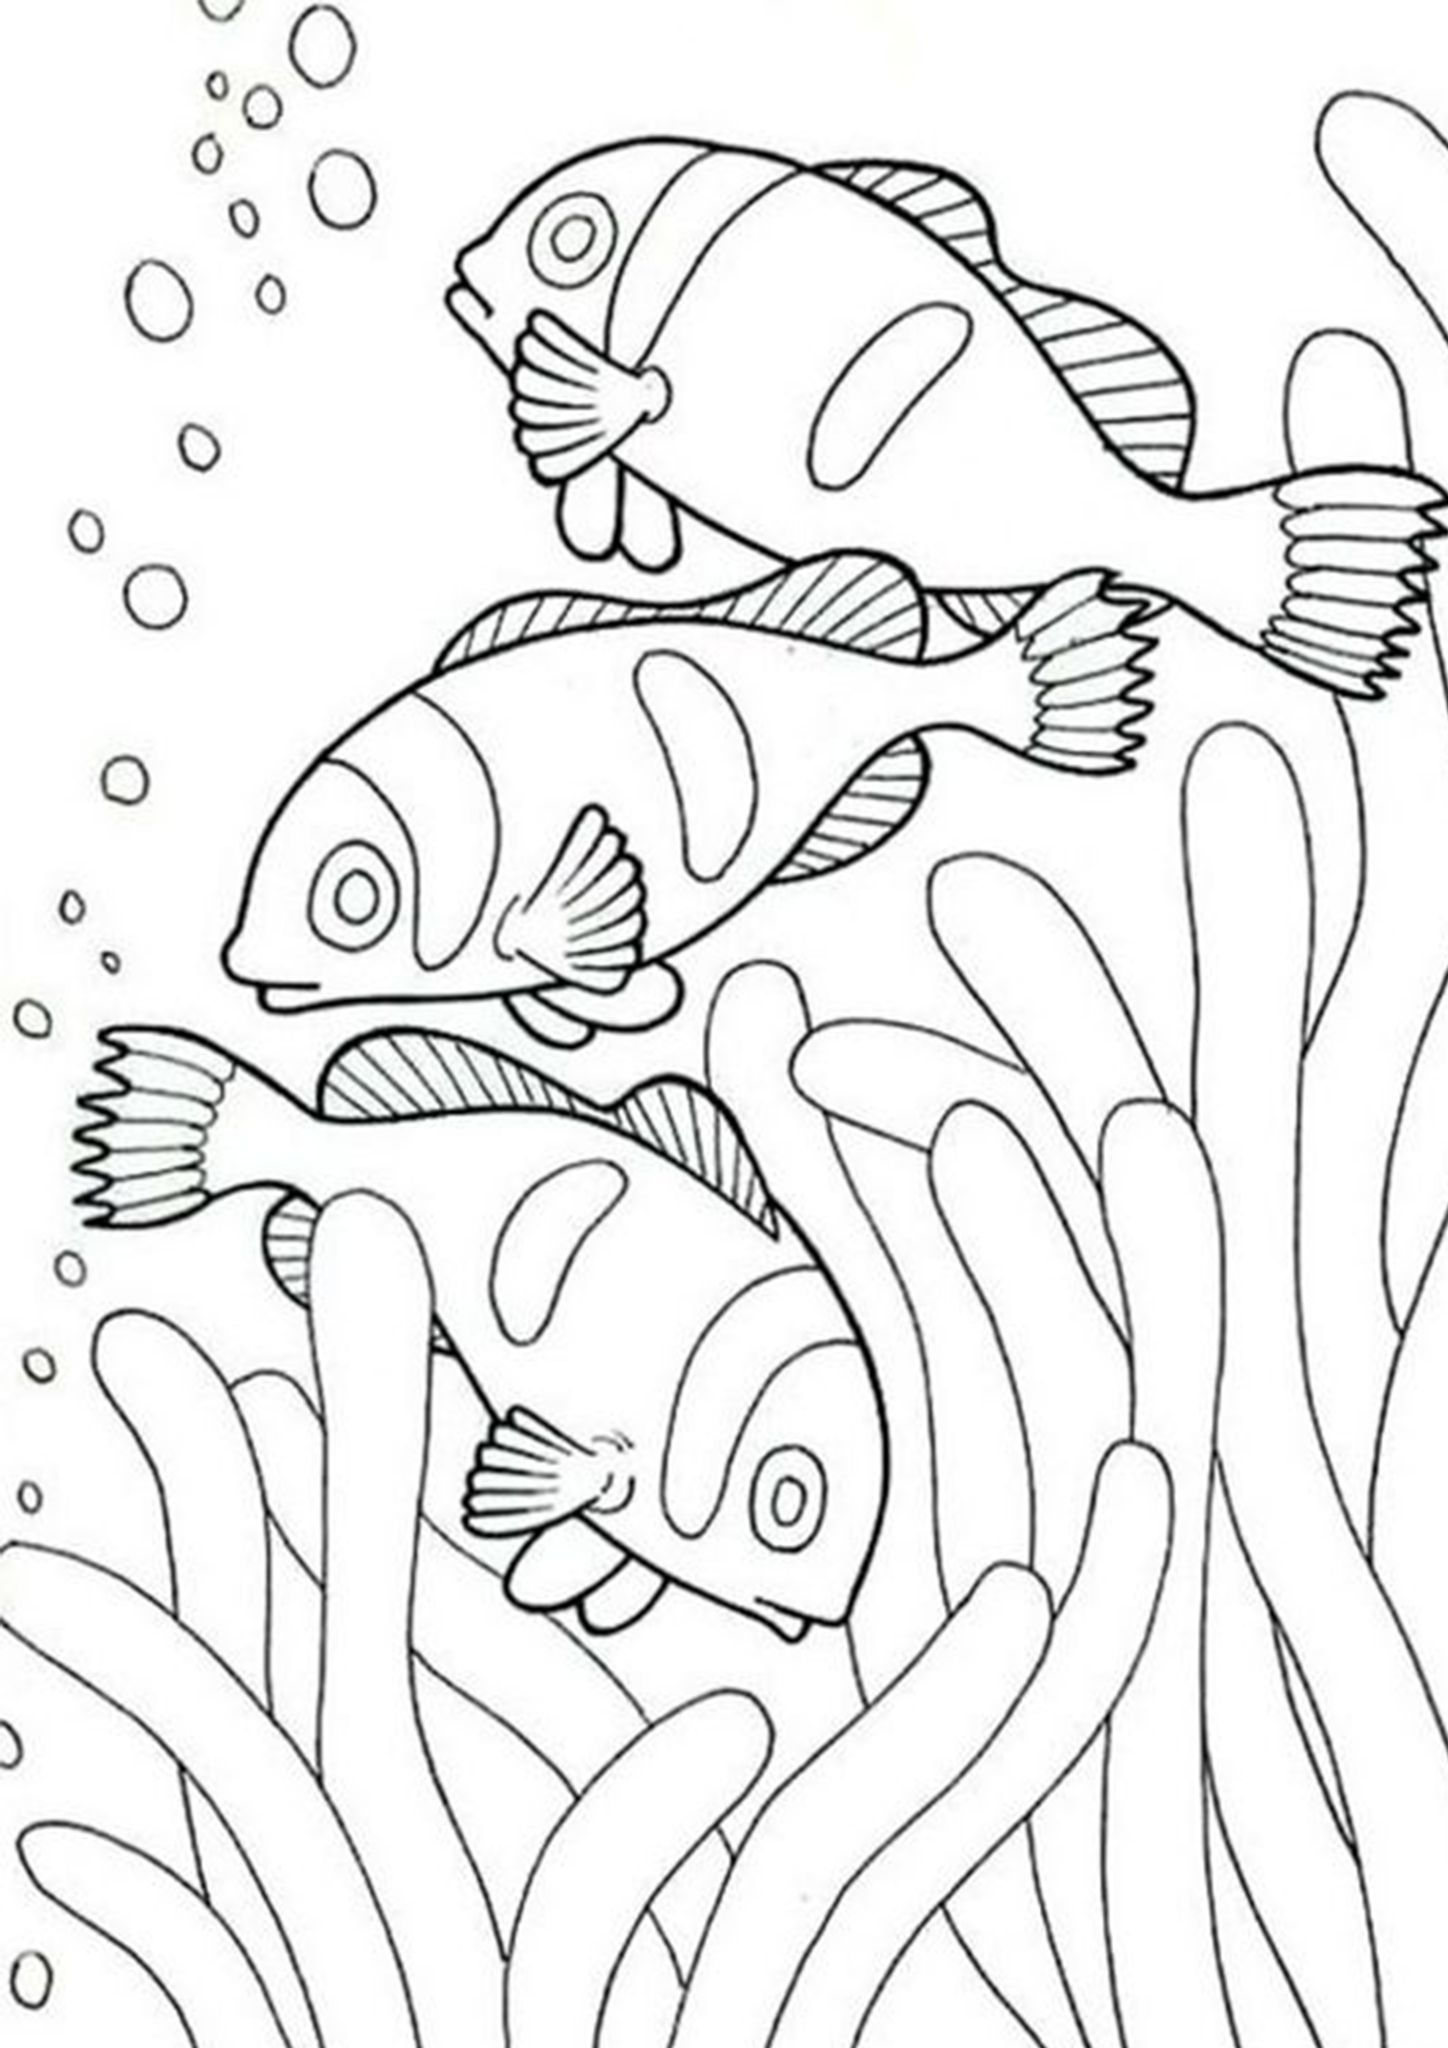 Free Easy To Print Fish Coloring Pages Fish Coloring Page Animal Coloring Pages Ocean Coloring Pages